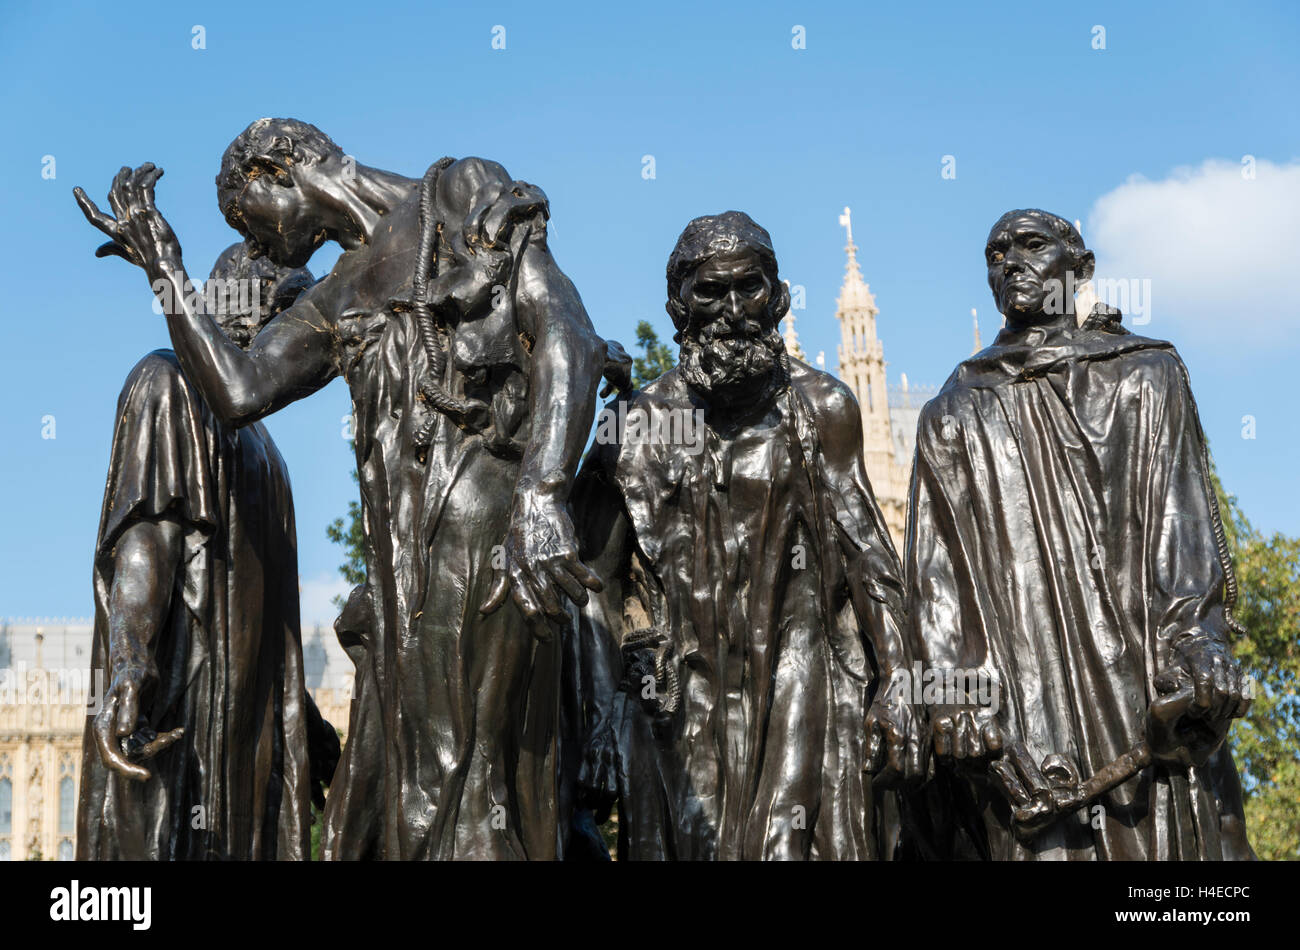 The Burghers of Calais sculpture by Rodin in Victoria Tower Gardens, London - Stock Image